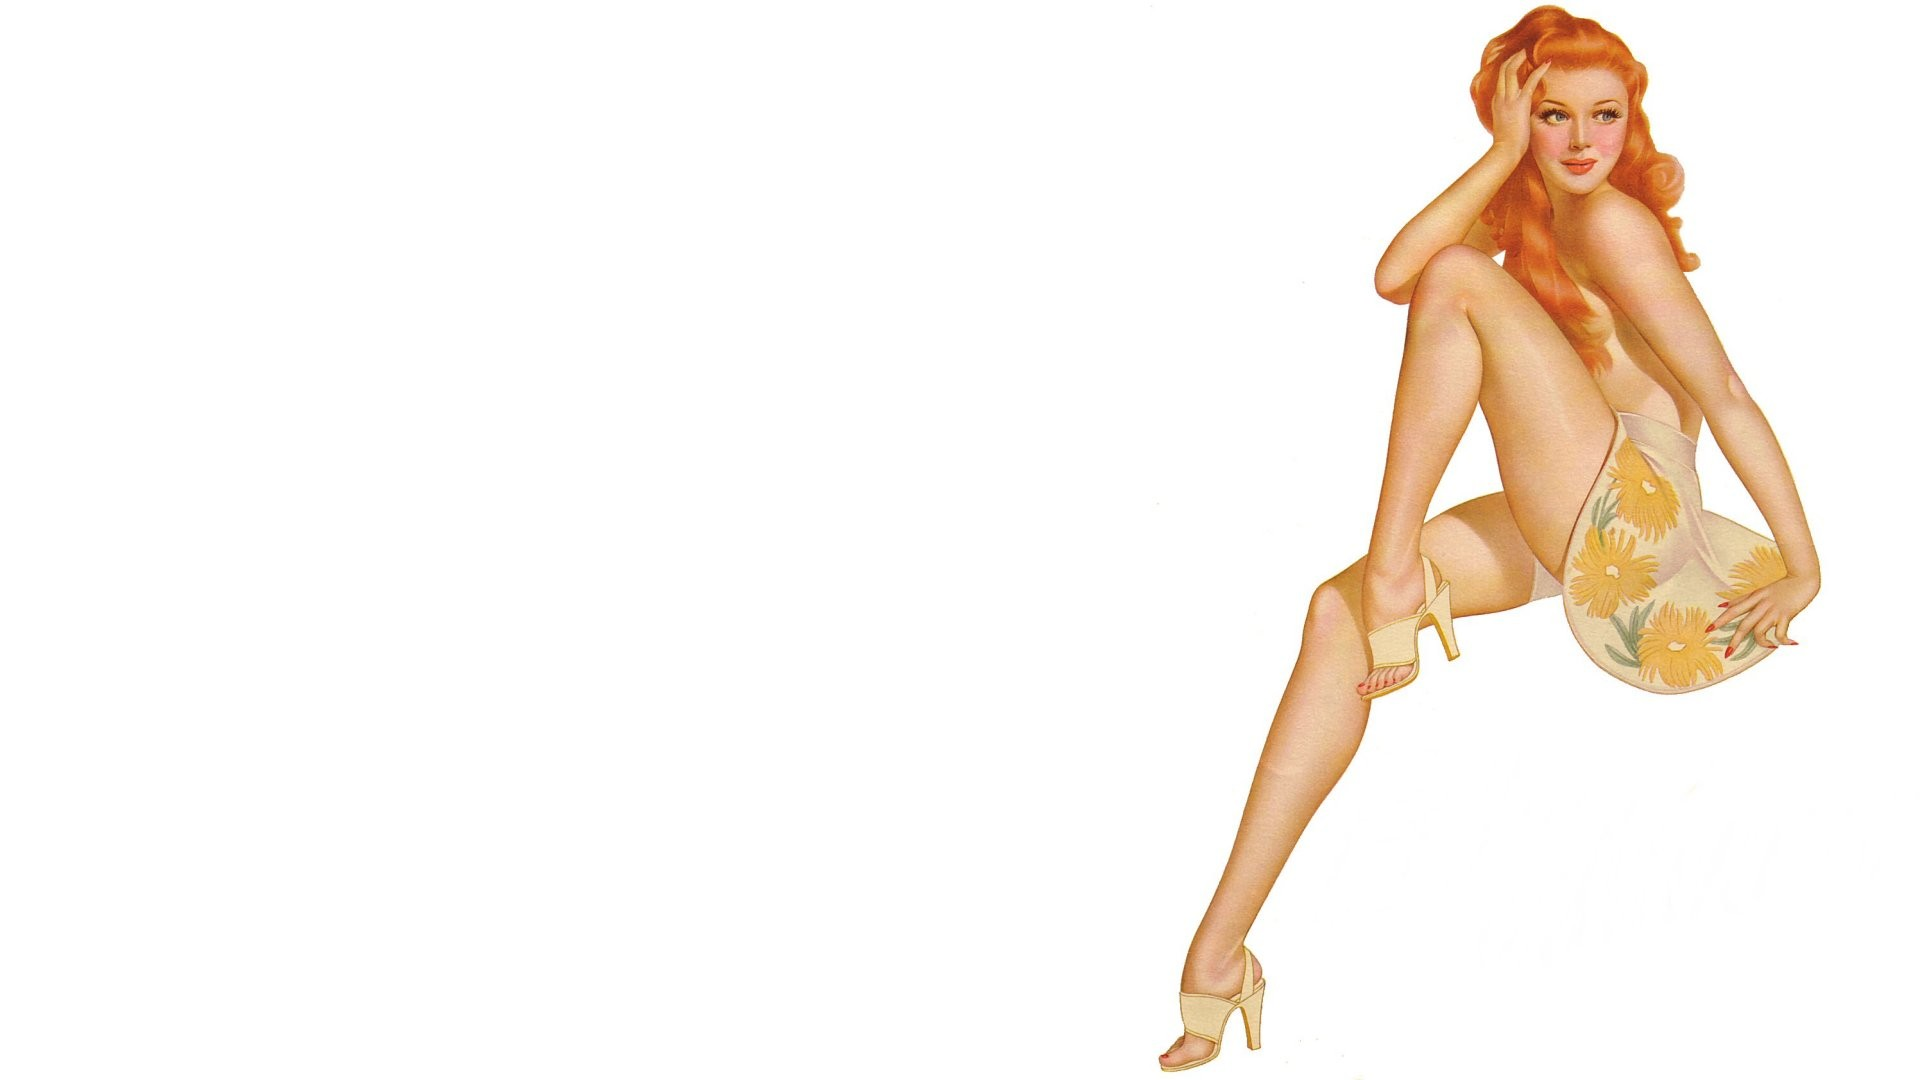 Pose pin up shoes girl wallpaper x